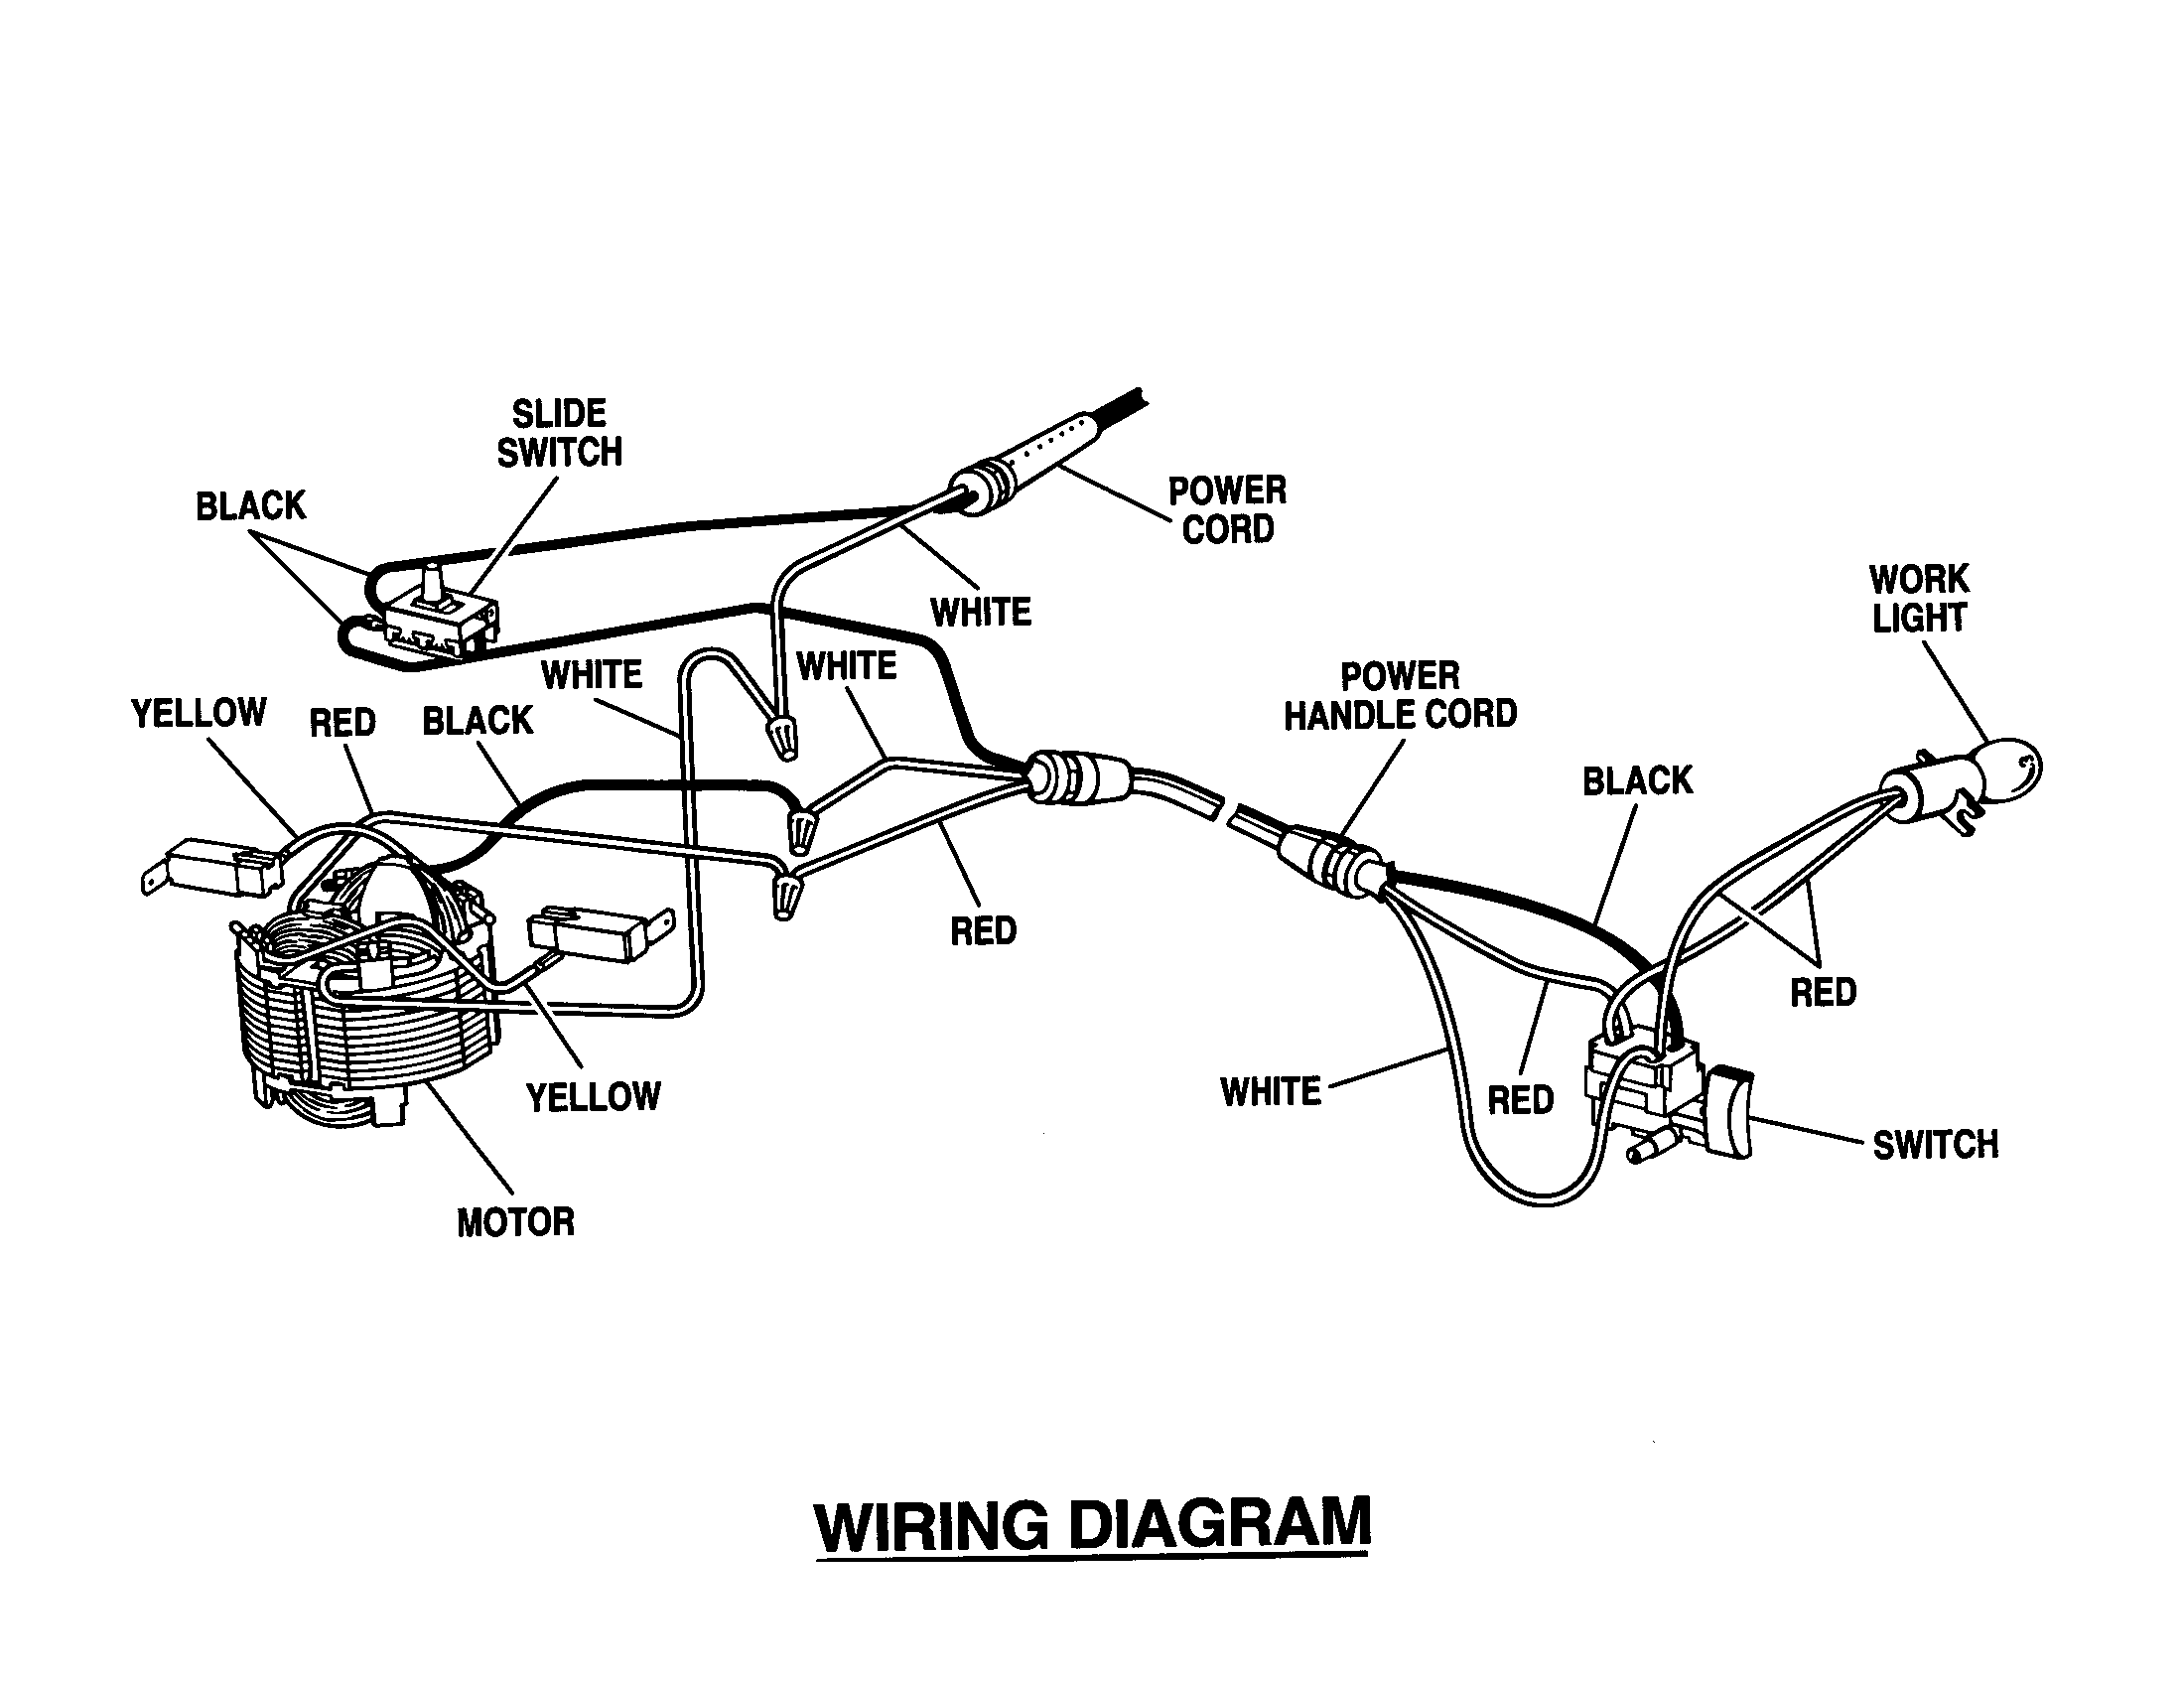 [WRG-9423] Wiring Diagram For Craftsman Router